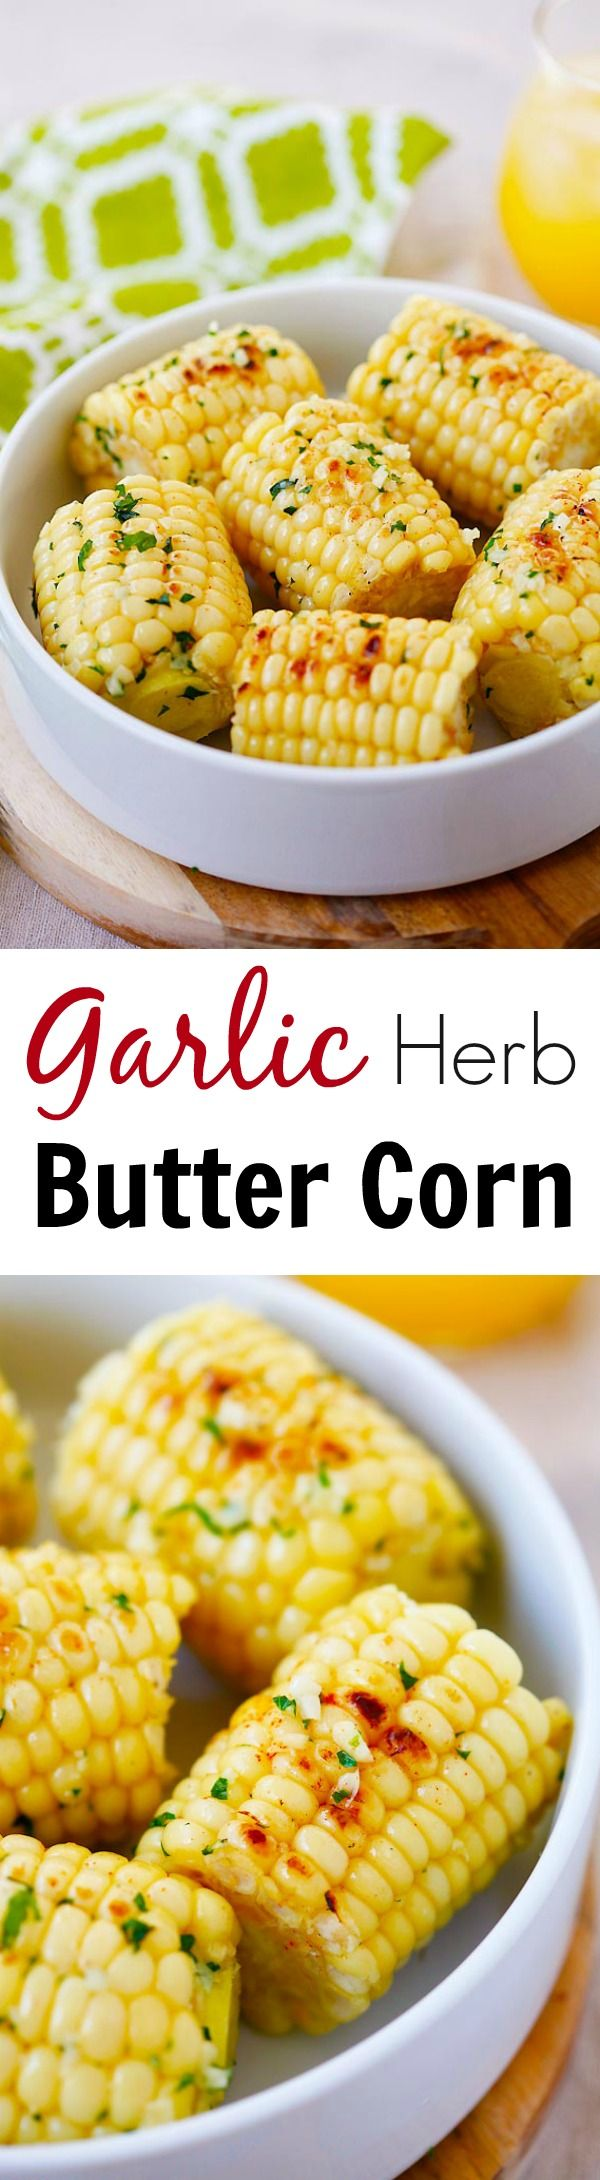 Garlic-Herb Butter Roasted Corn - corn with garlic herb butter and roasted on grill pan. The corn takes 15 mins to make and SO good!!   rasamalaysia.com